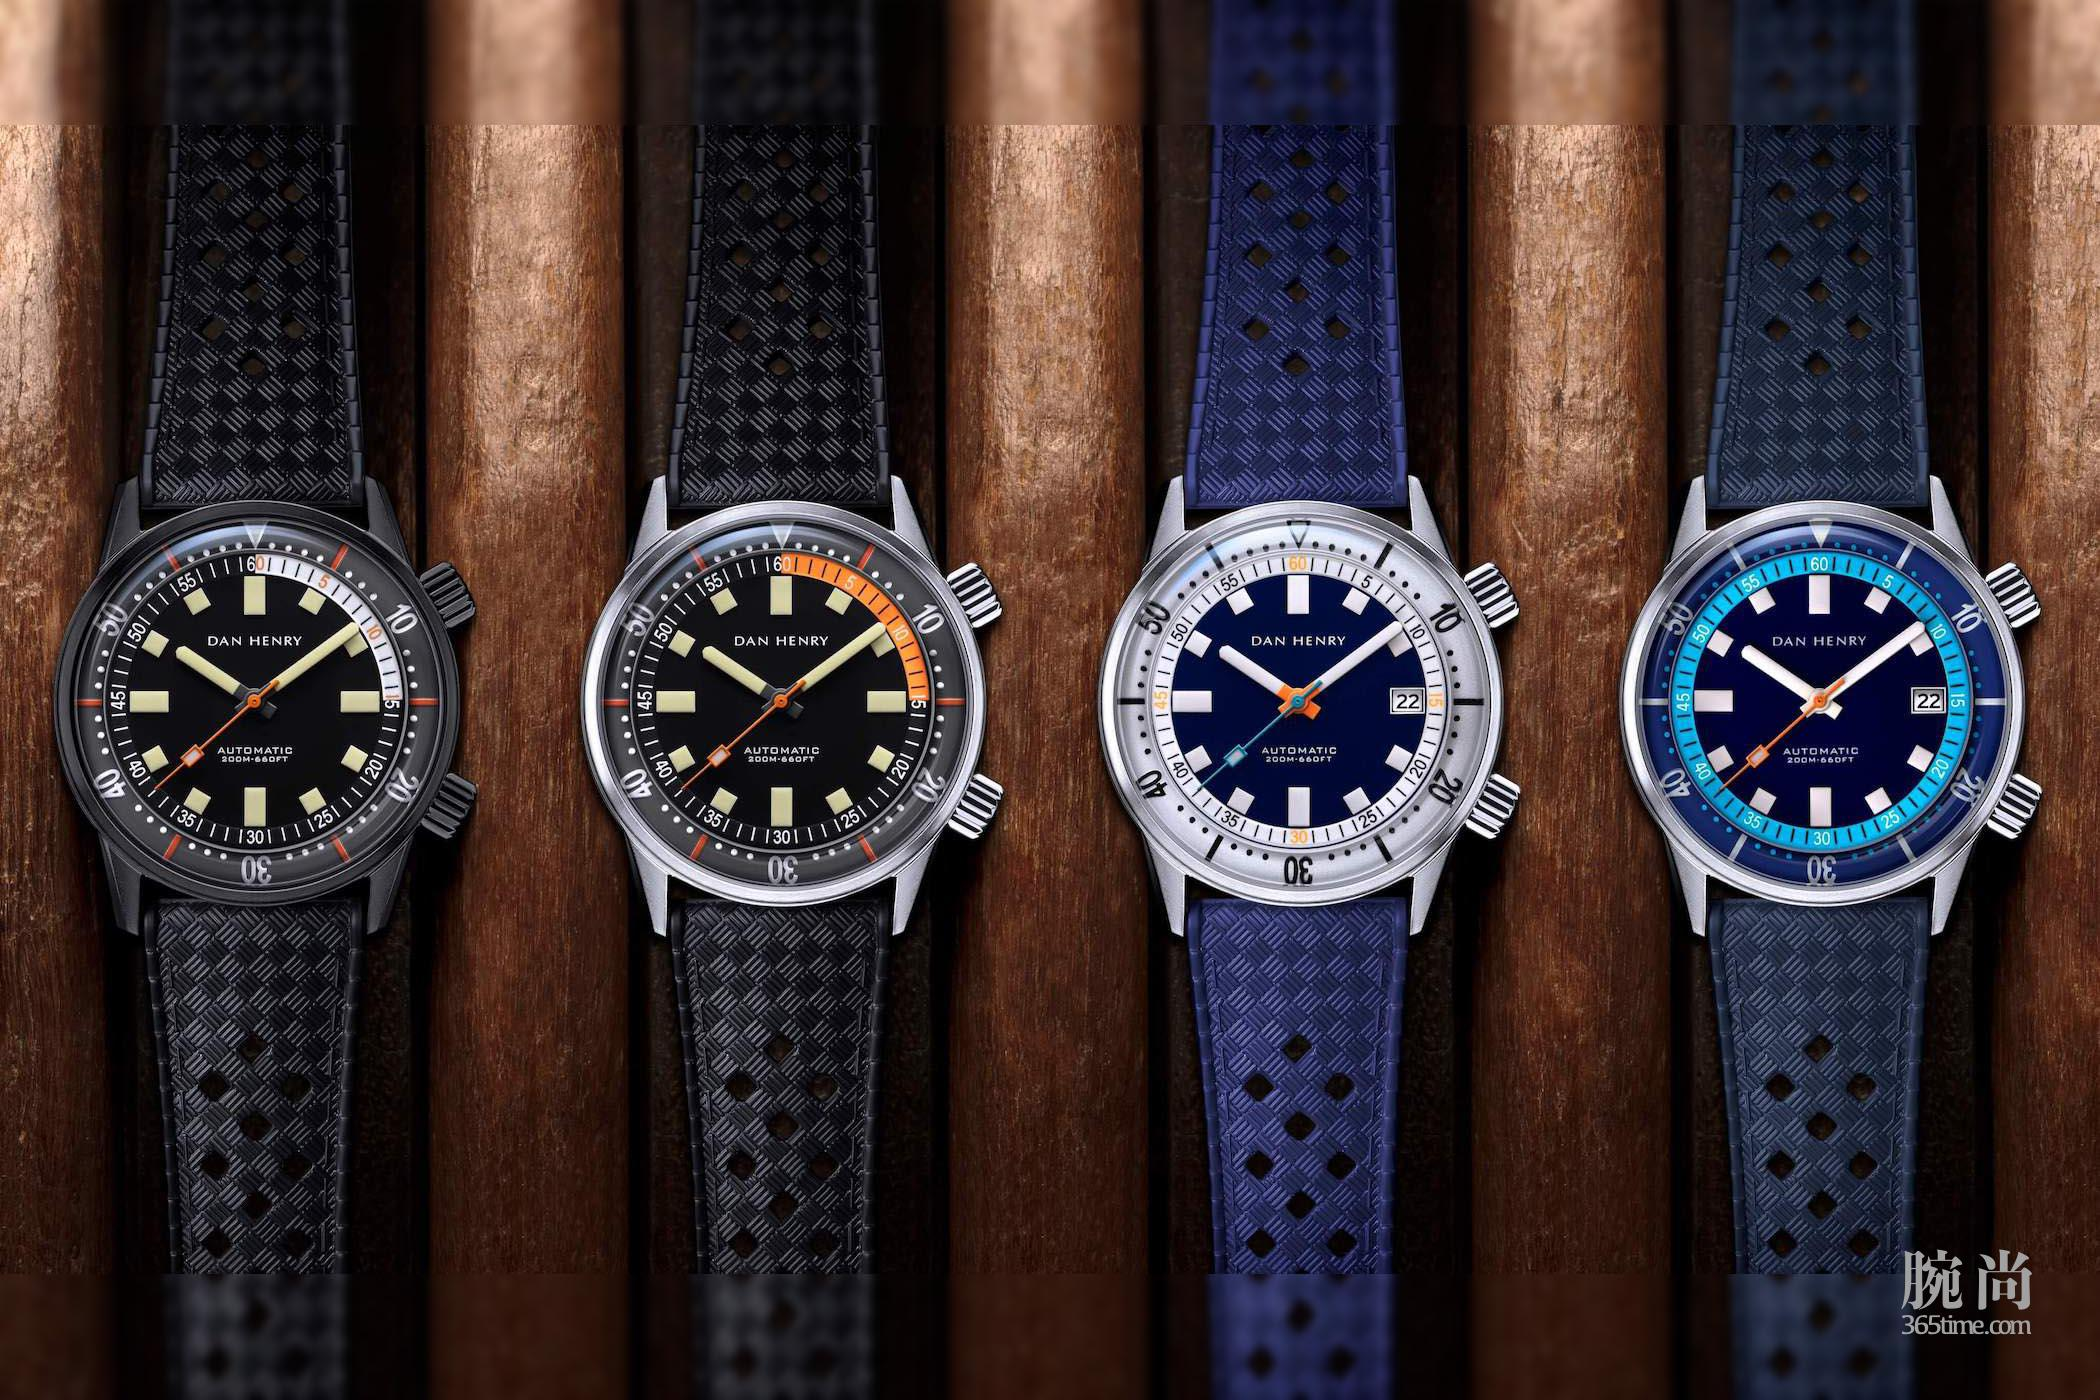 Dan-Henry-1970-Automatic-Diver-40mm-New-Colours-2019-14.jpg